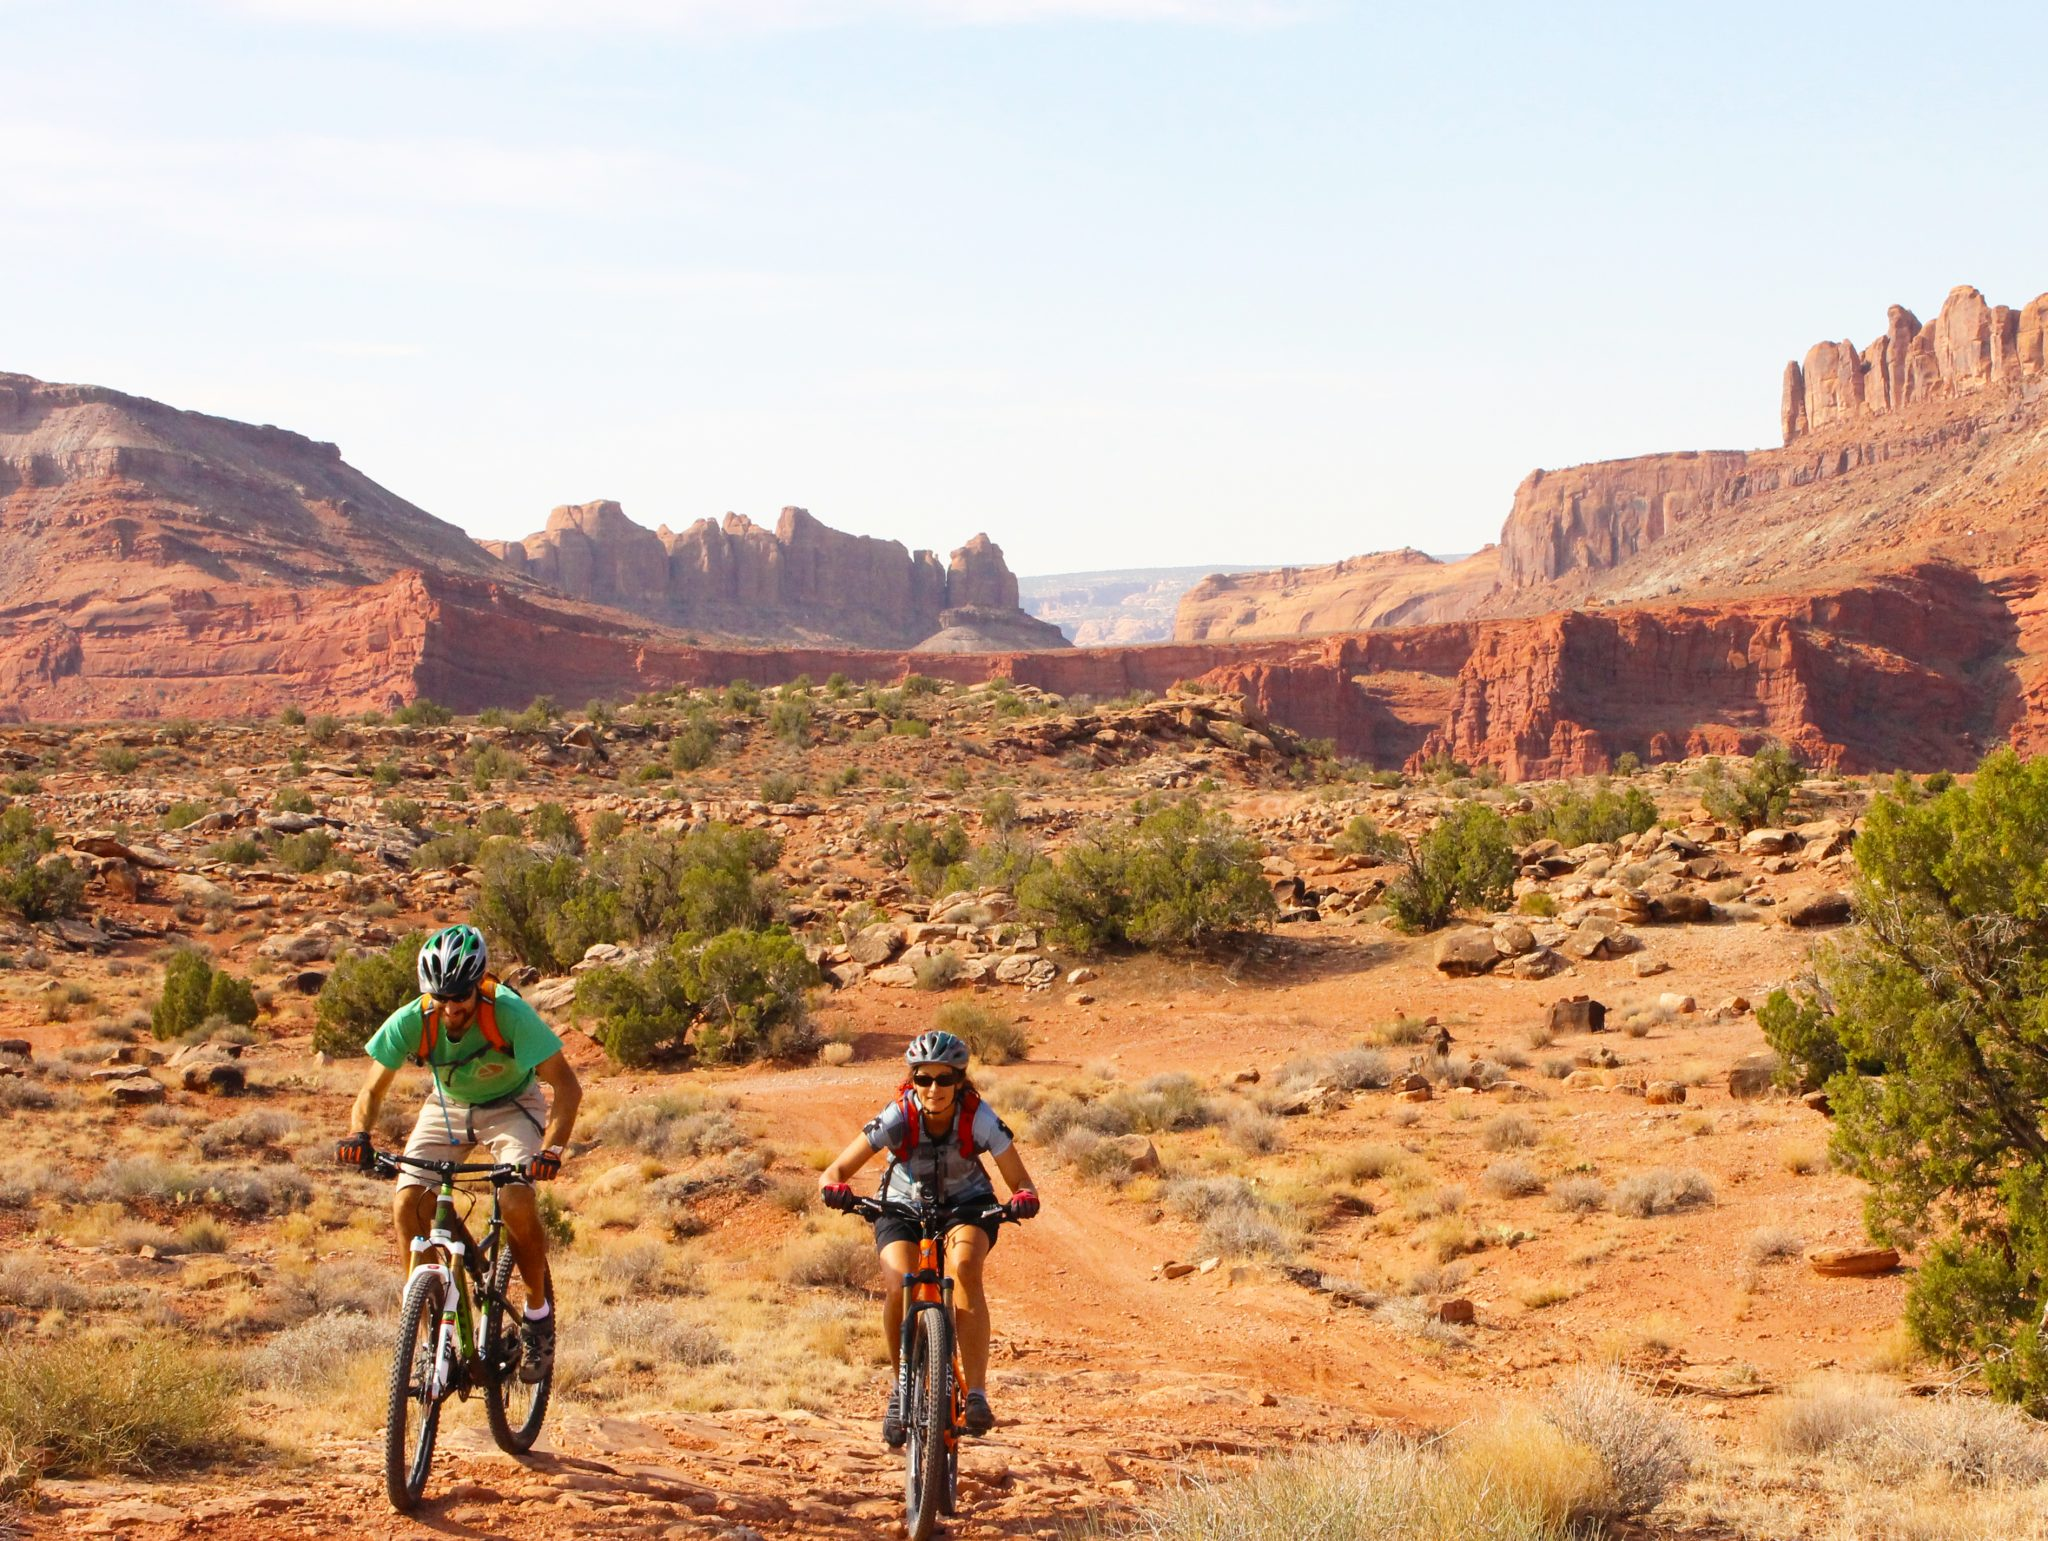 A pair of mountain bikers on Moab Brands Trails, including the Courthouse Loop